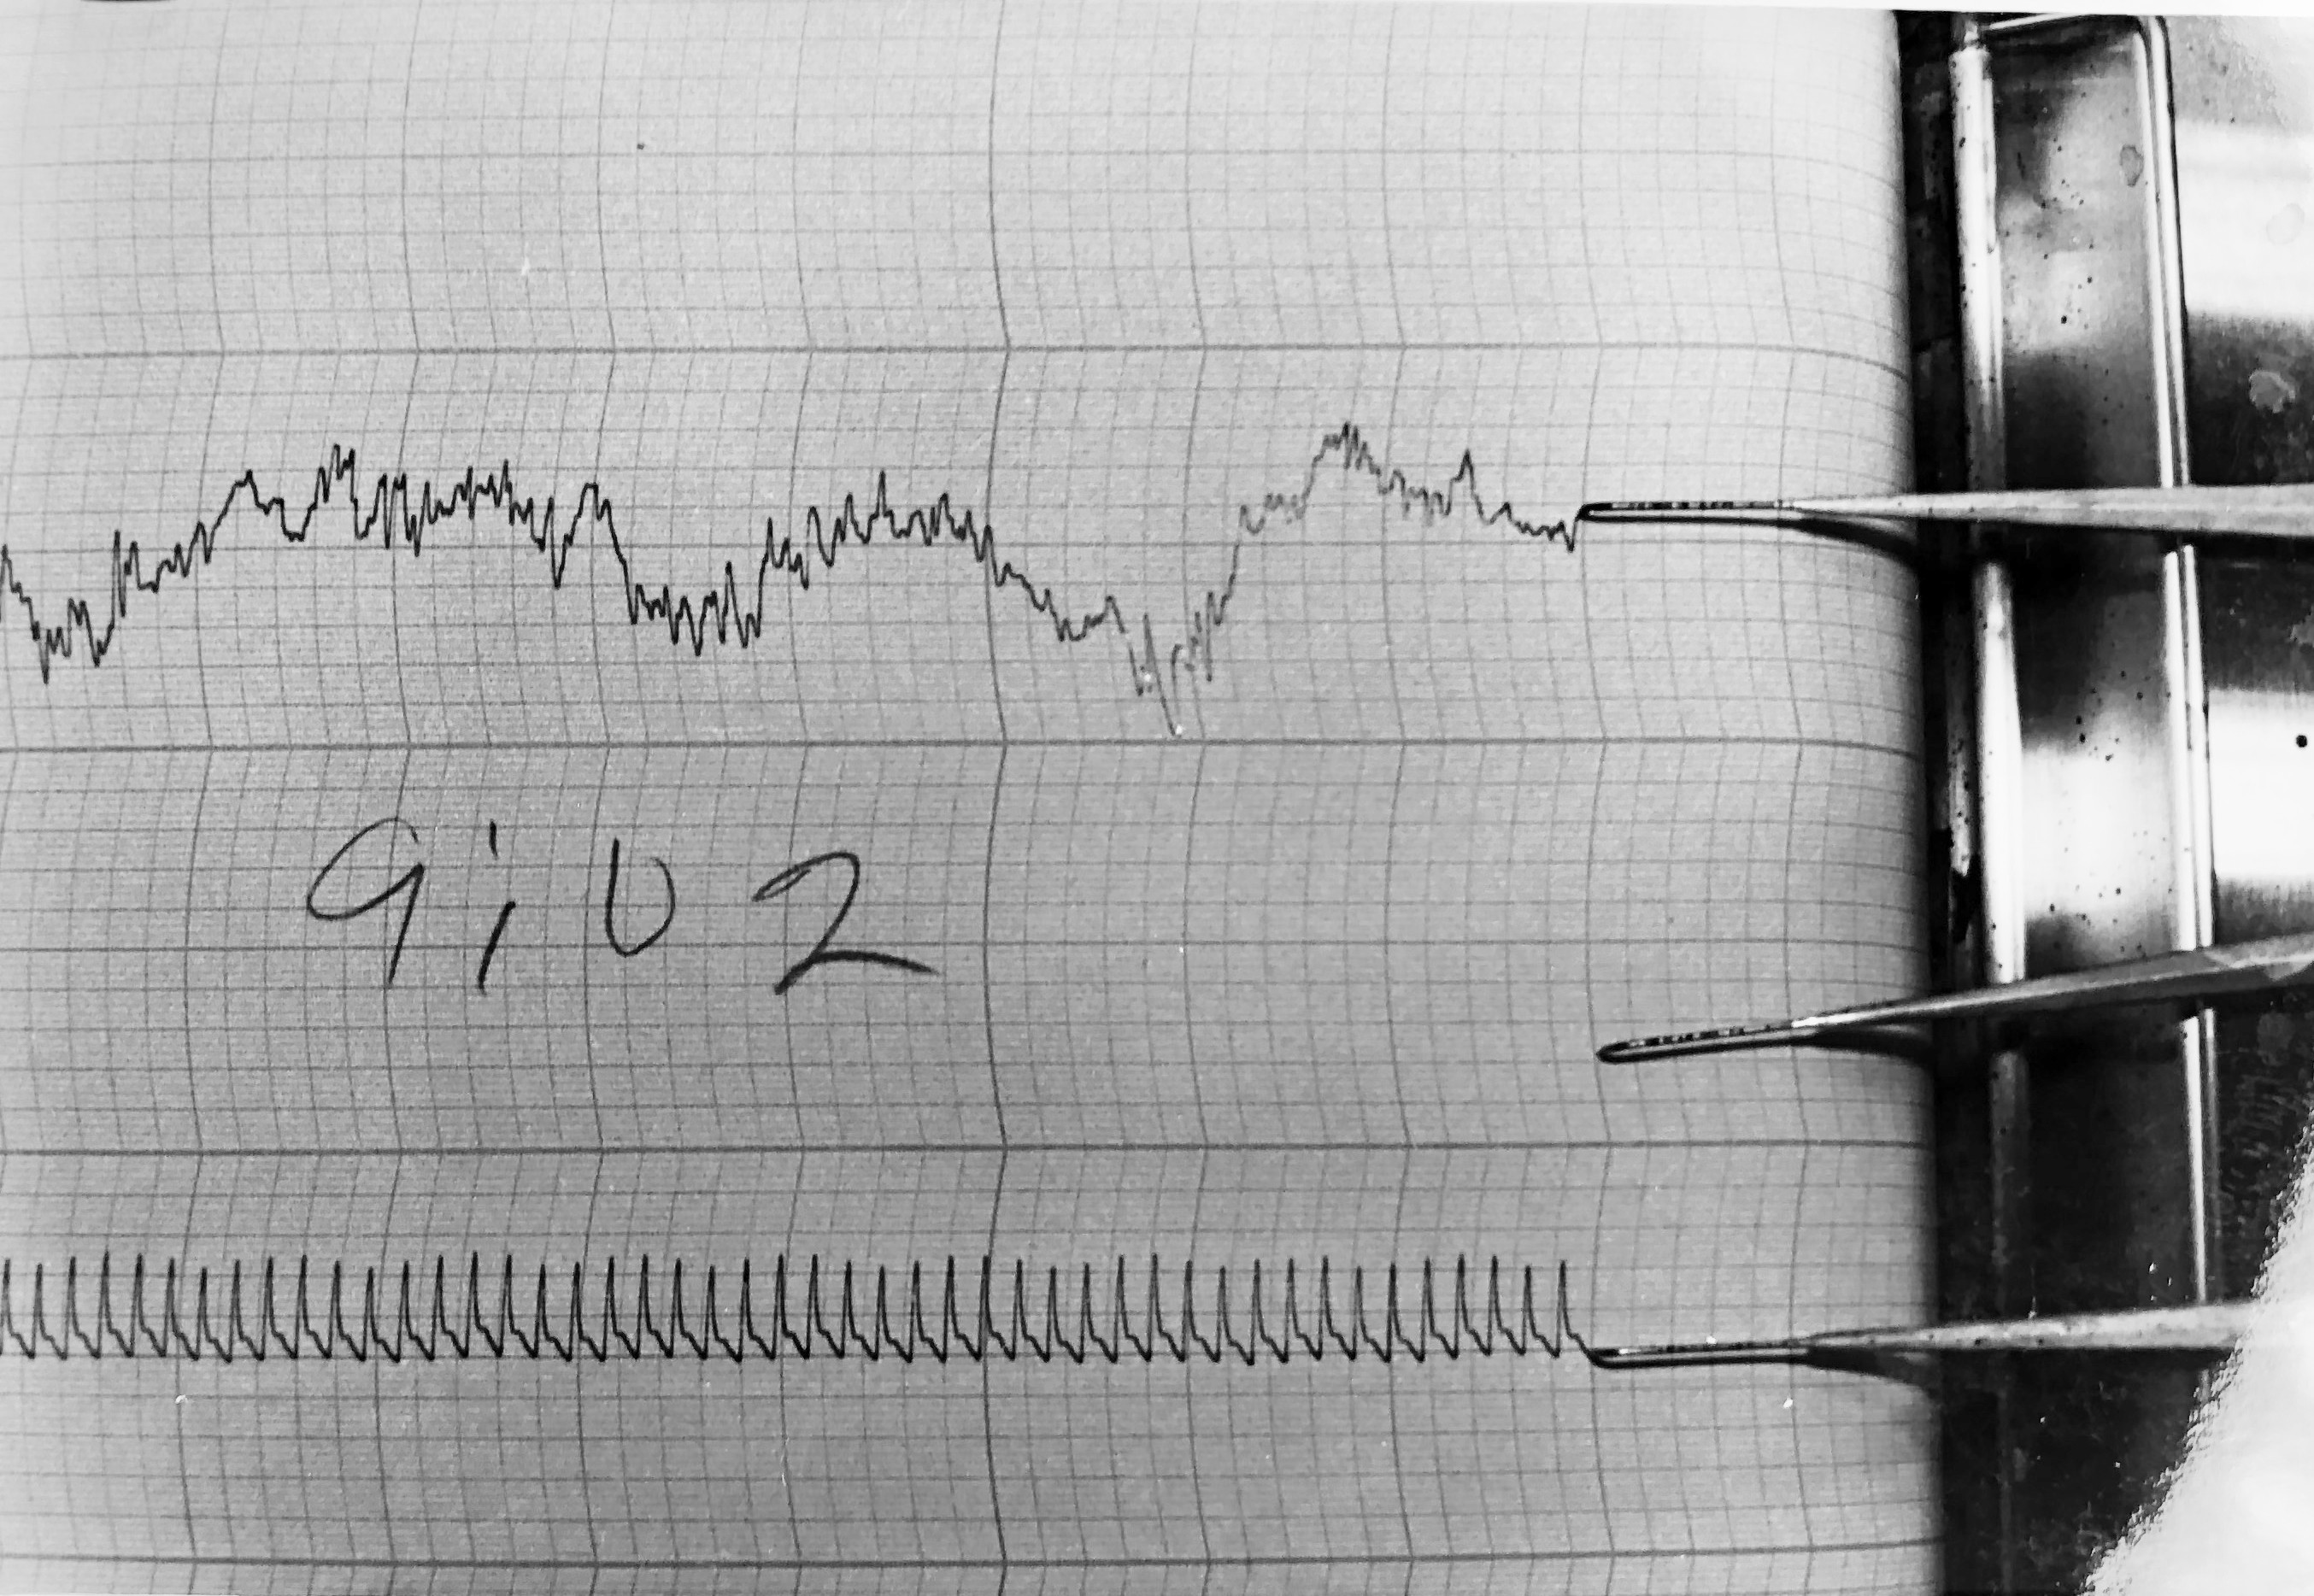 EEG graph paper from Dr. White's Lab